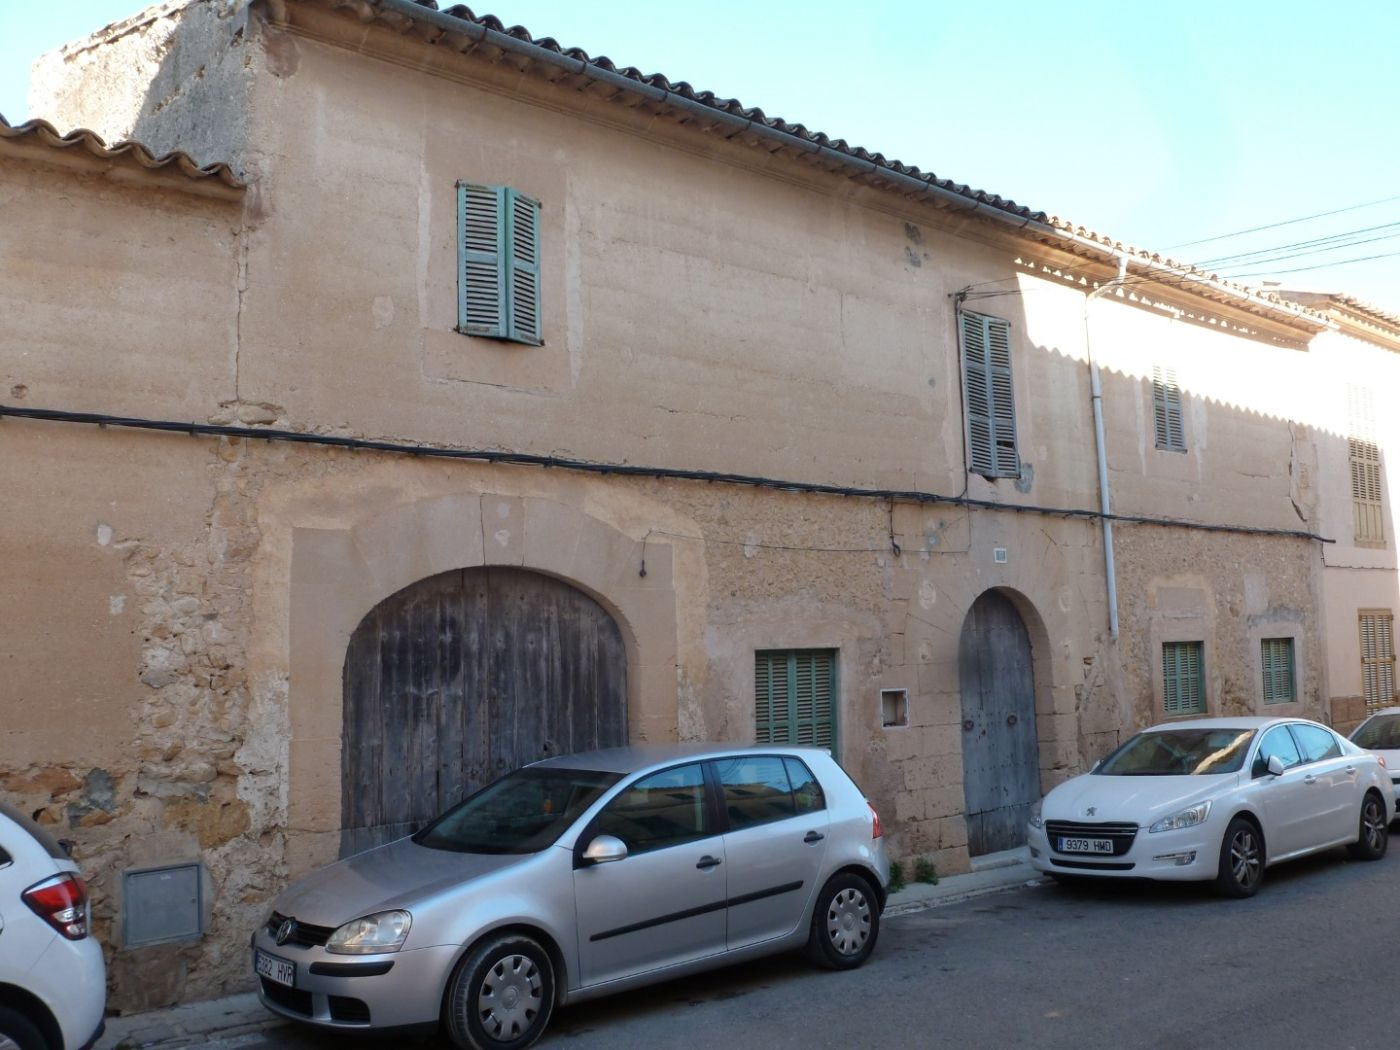 House in Carrer d'en frau 17. Casa con 4 habitaciones con parking